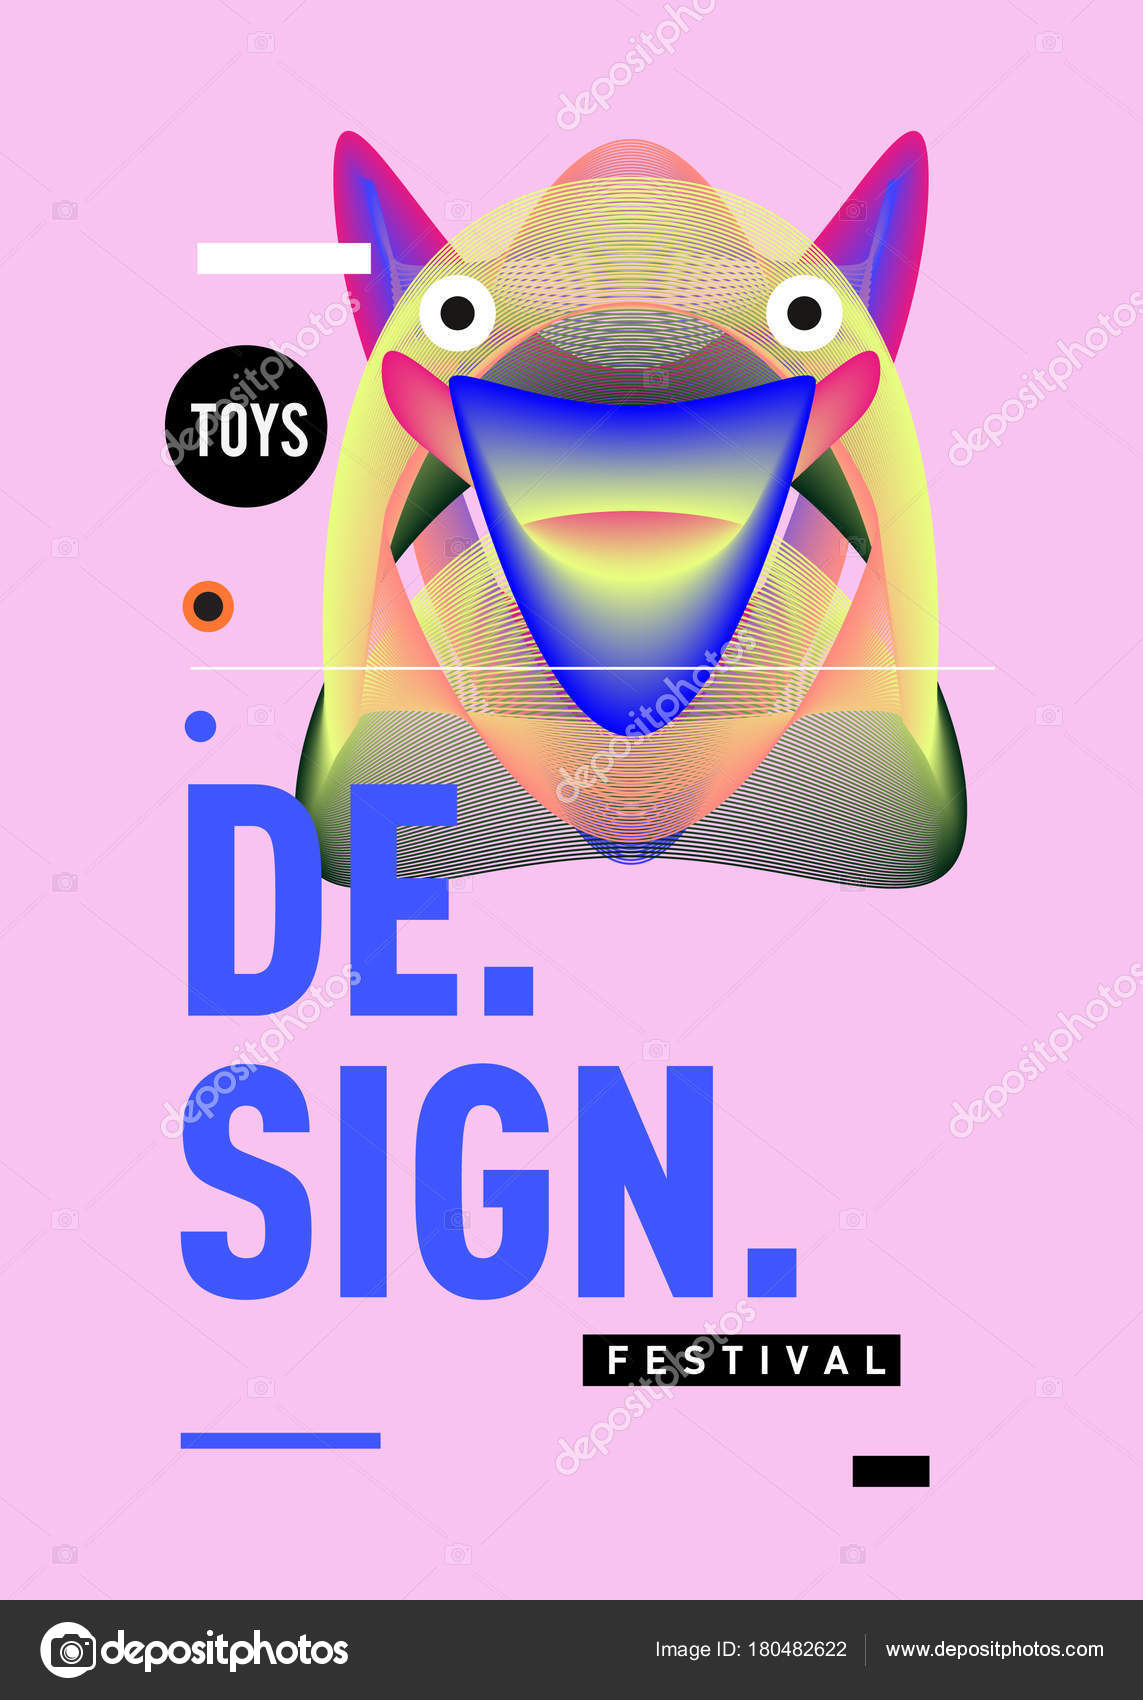 abstract modern toy design festival poster publications